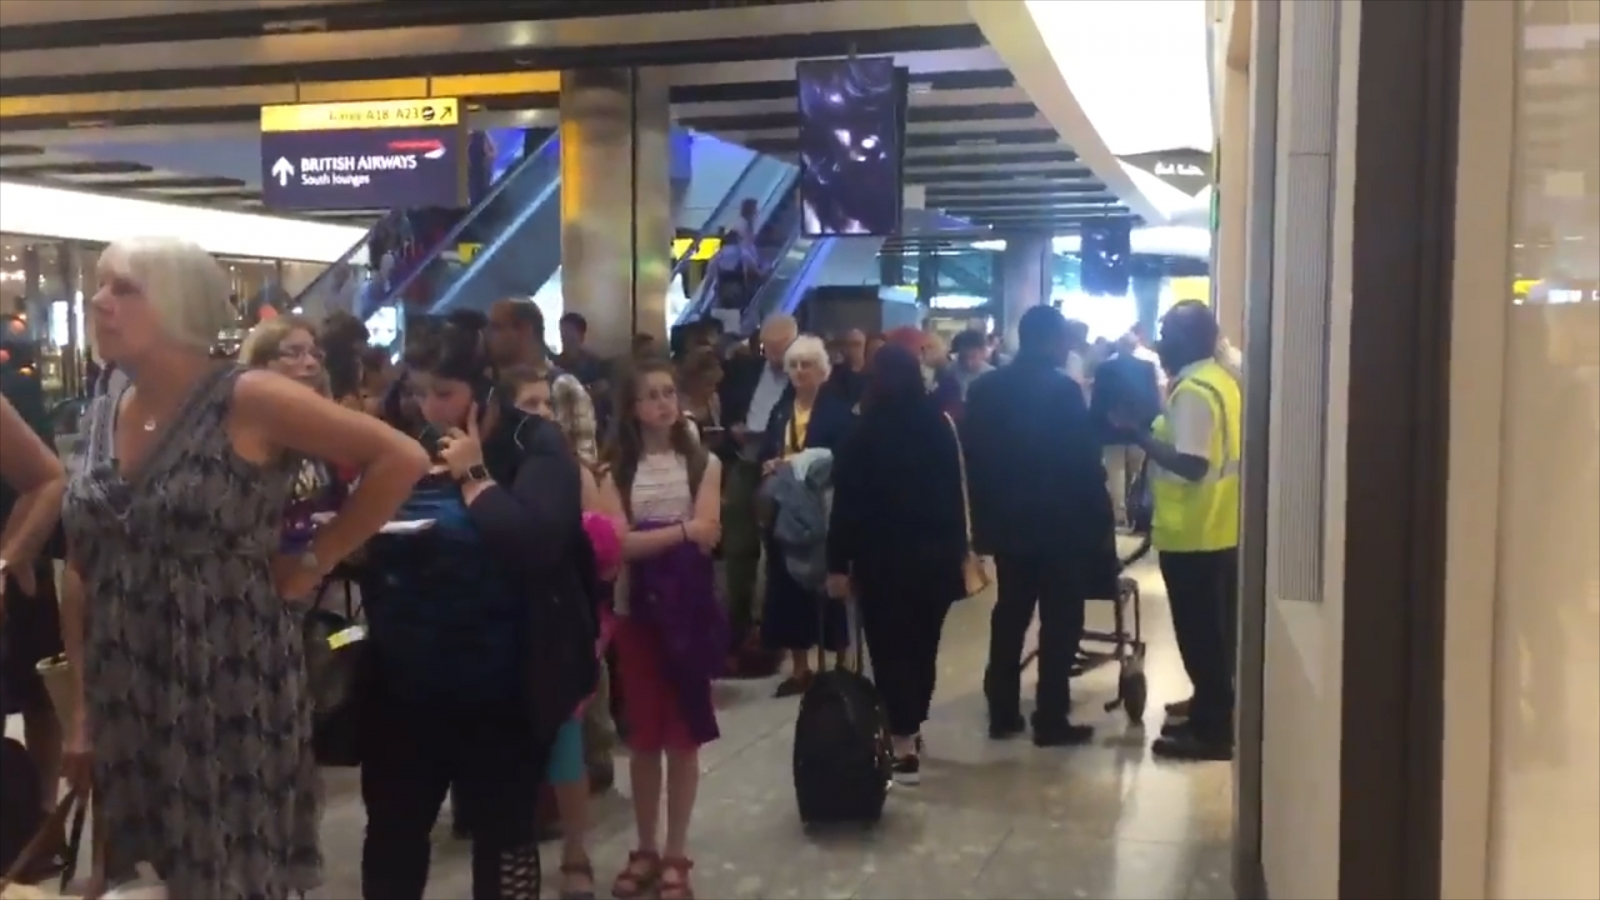 Massive queue forms at Heathrow exit as passengers are told to leave airport